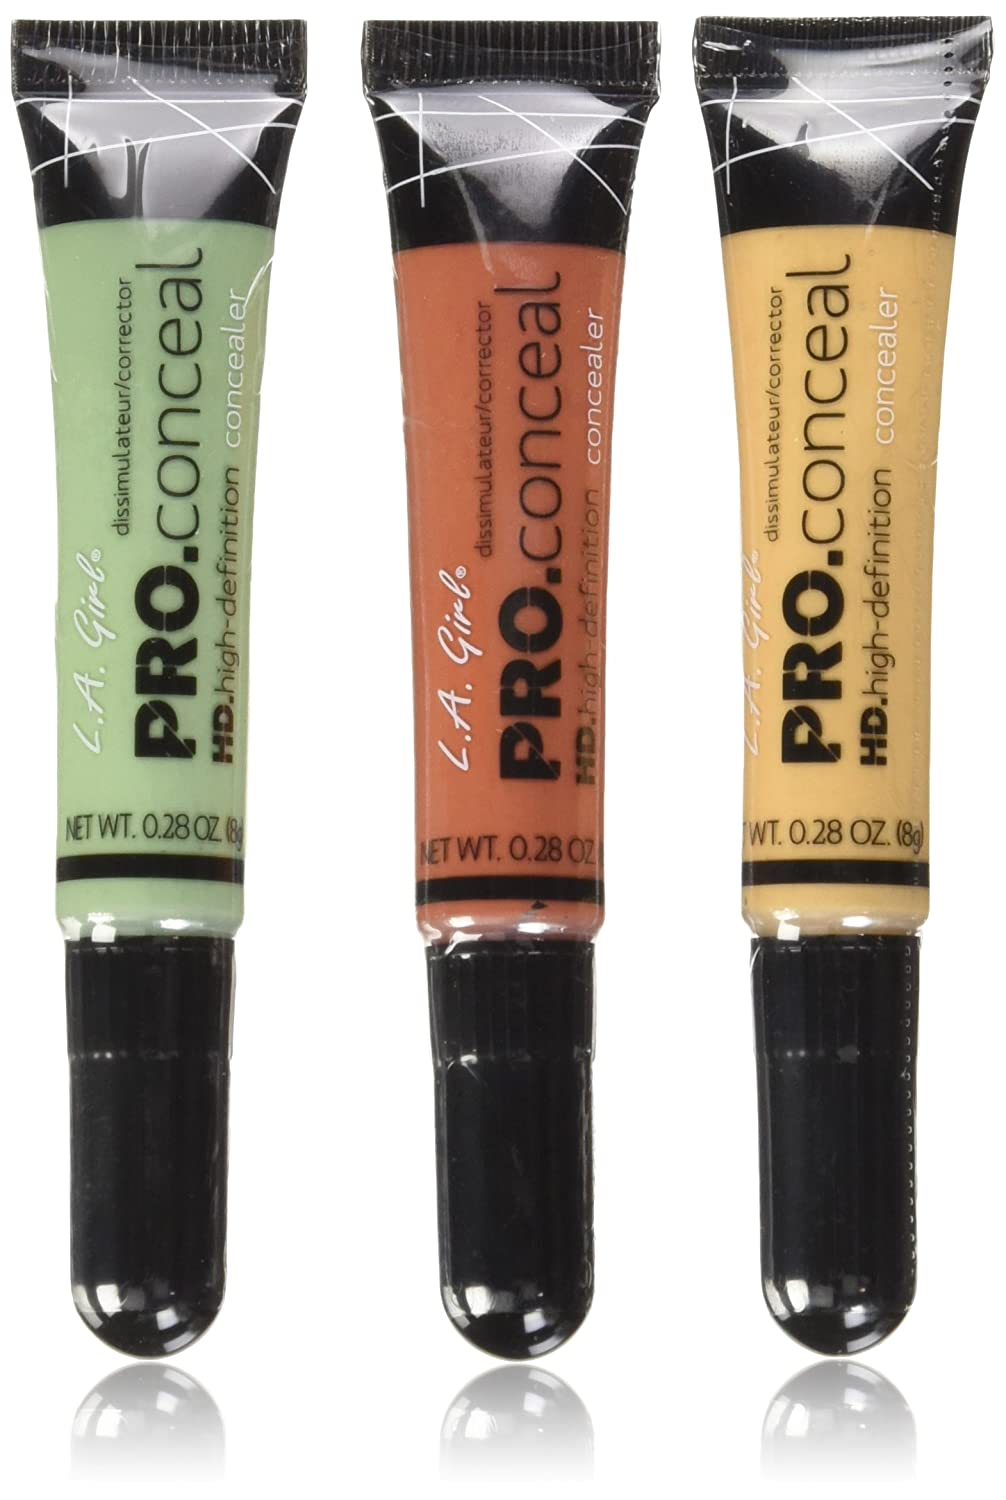 3 LA Girl Pro Conceal HD Concealer (Orange, Yellow, Green) L.A. Girl Beauty21